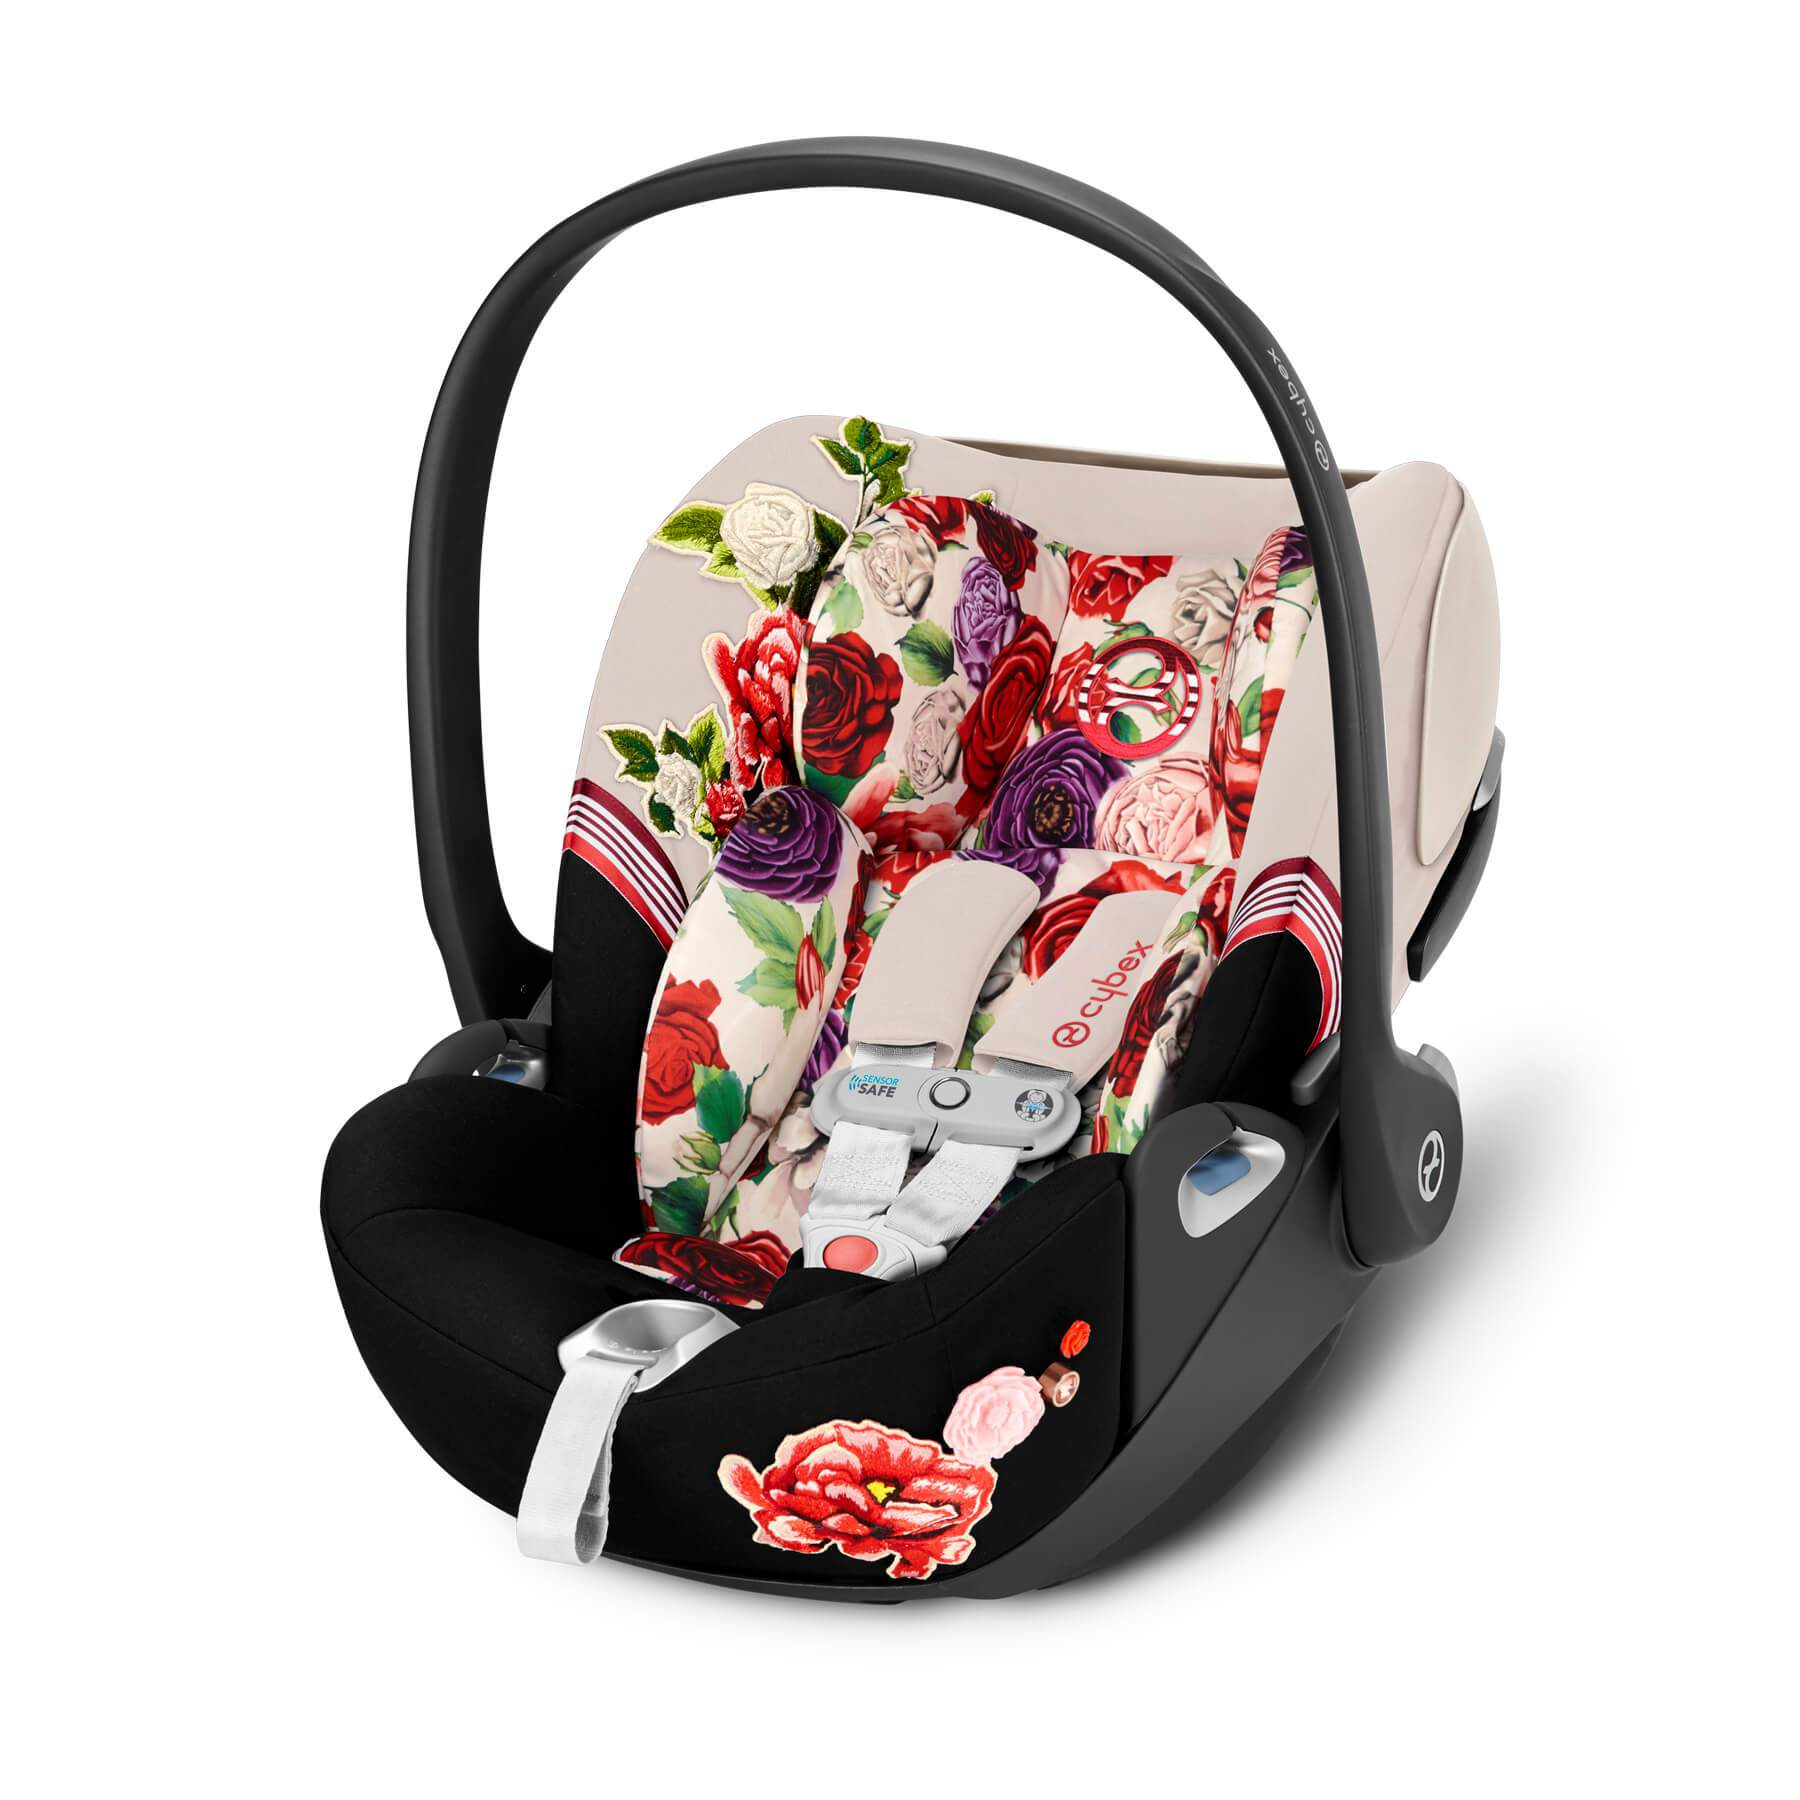 Cybex Cloud Z SensorSafe - Spring Blossom Light